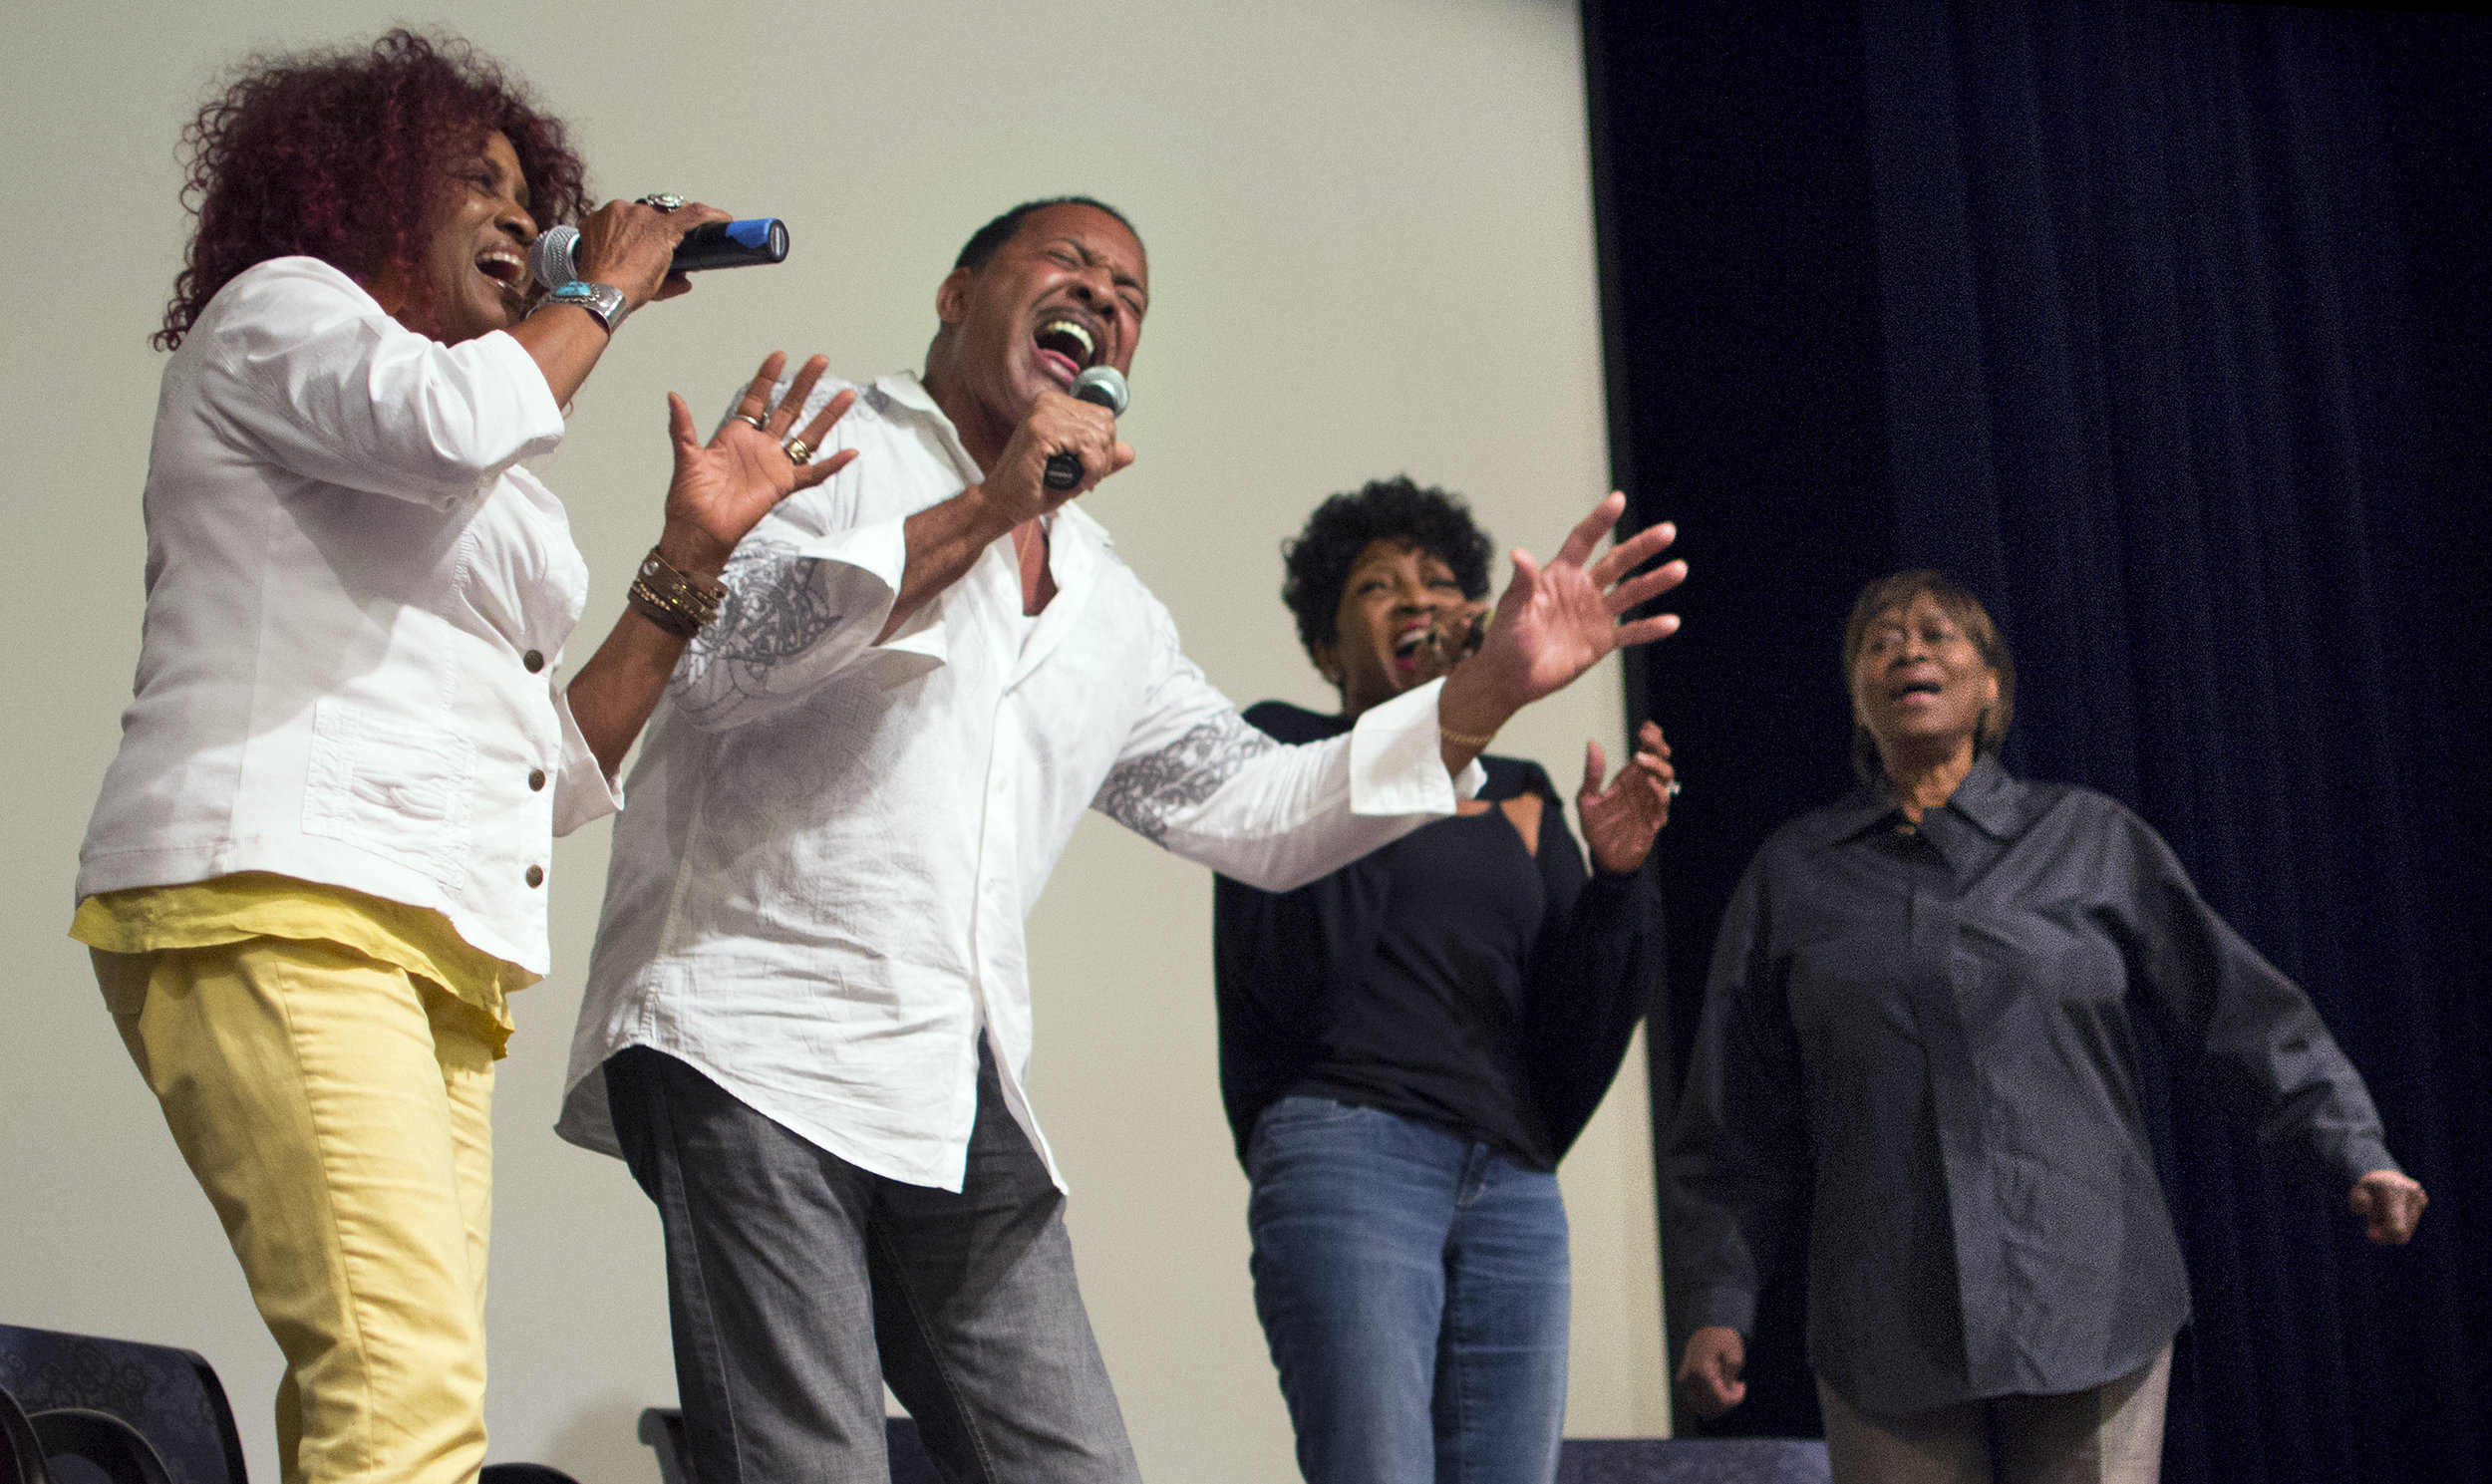 """Julia Waters, left, Orin Waters, Maxine Waters, and Claudia Lennear sing """"Love Lifts Us Up Where We Belong"""" Tuesday evening at Rose Hills Theater on the Pomona College campus. The performance followed a screening of the Academy Award winning film, """"20 Feet From Stardom"""" that featured the Waters siblings and Ms Lennear. The film examines the lives of backup musicians during the 1960 and 1970s."""